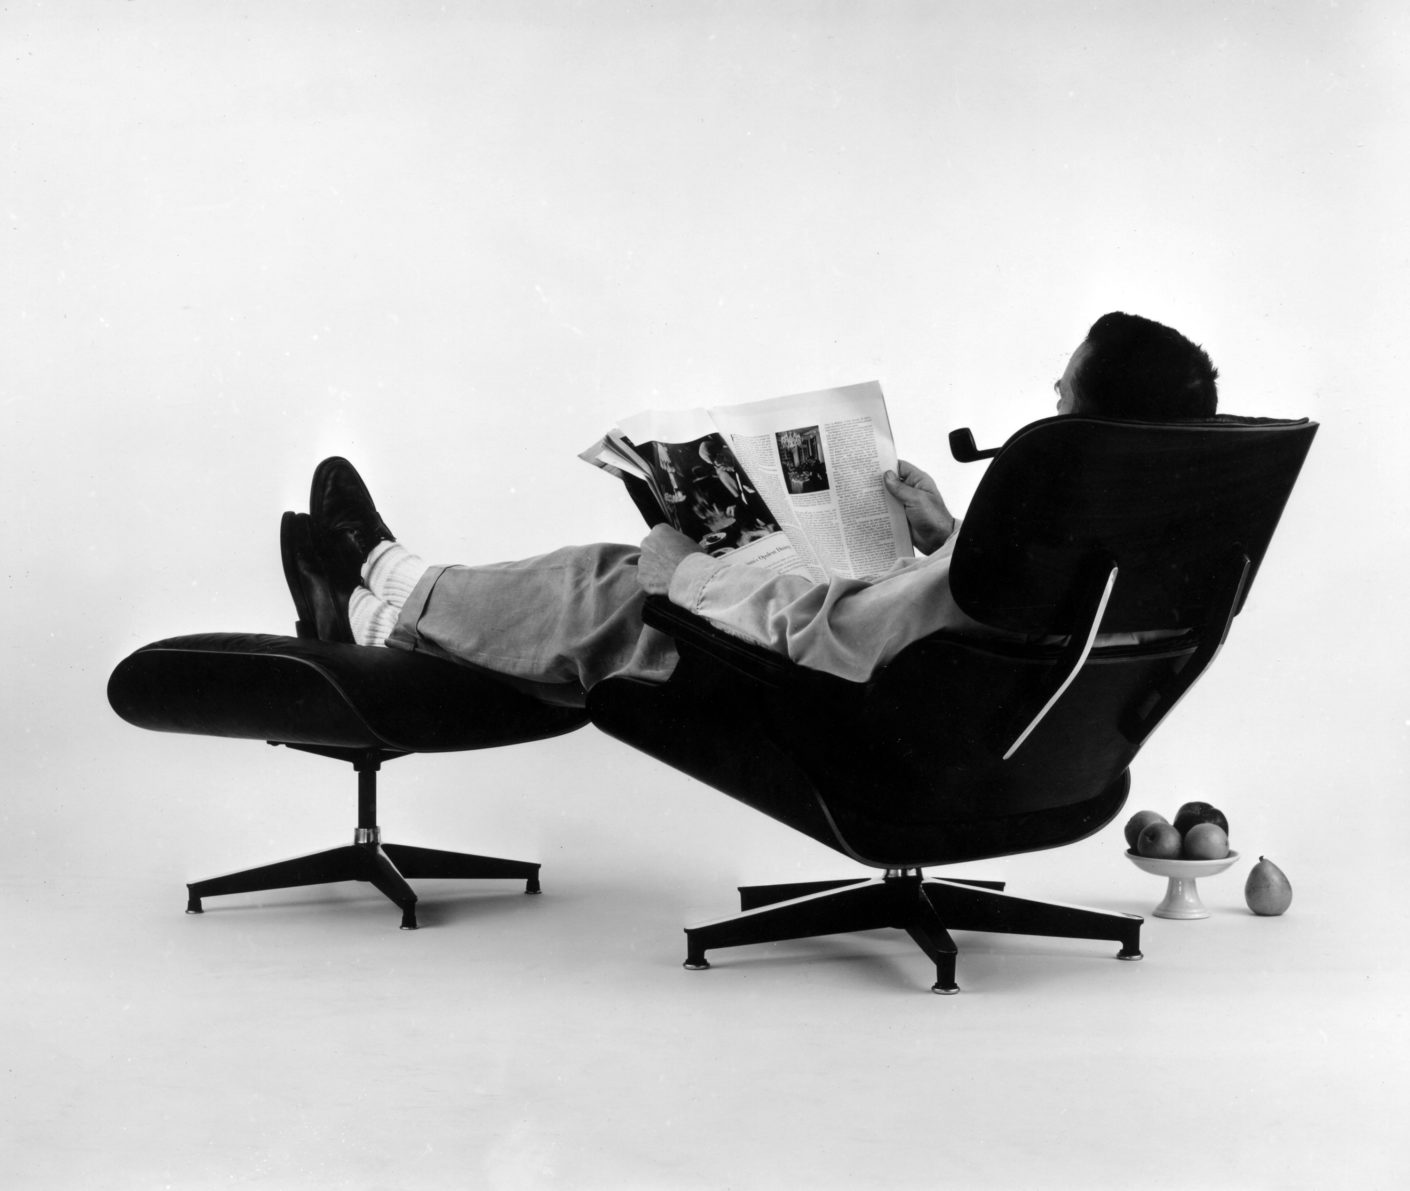 Vitra design Museum_An-Eames-Celebration.-Charles-Eames-in-the-plywood-Lounge-and-Ottoman-1956._Stylepark